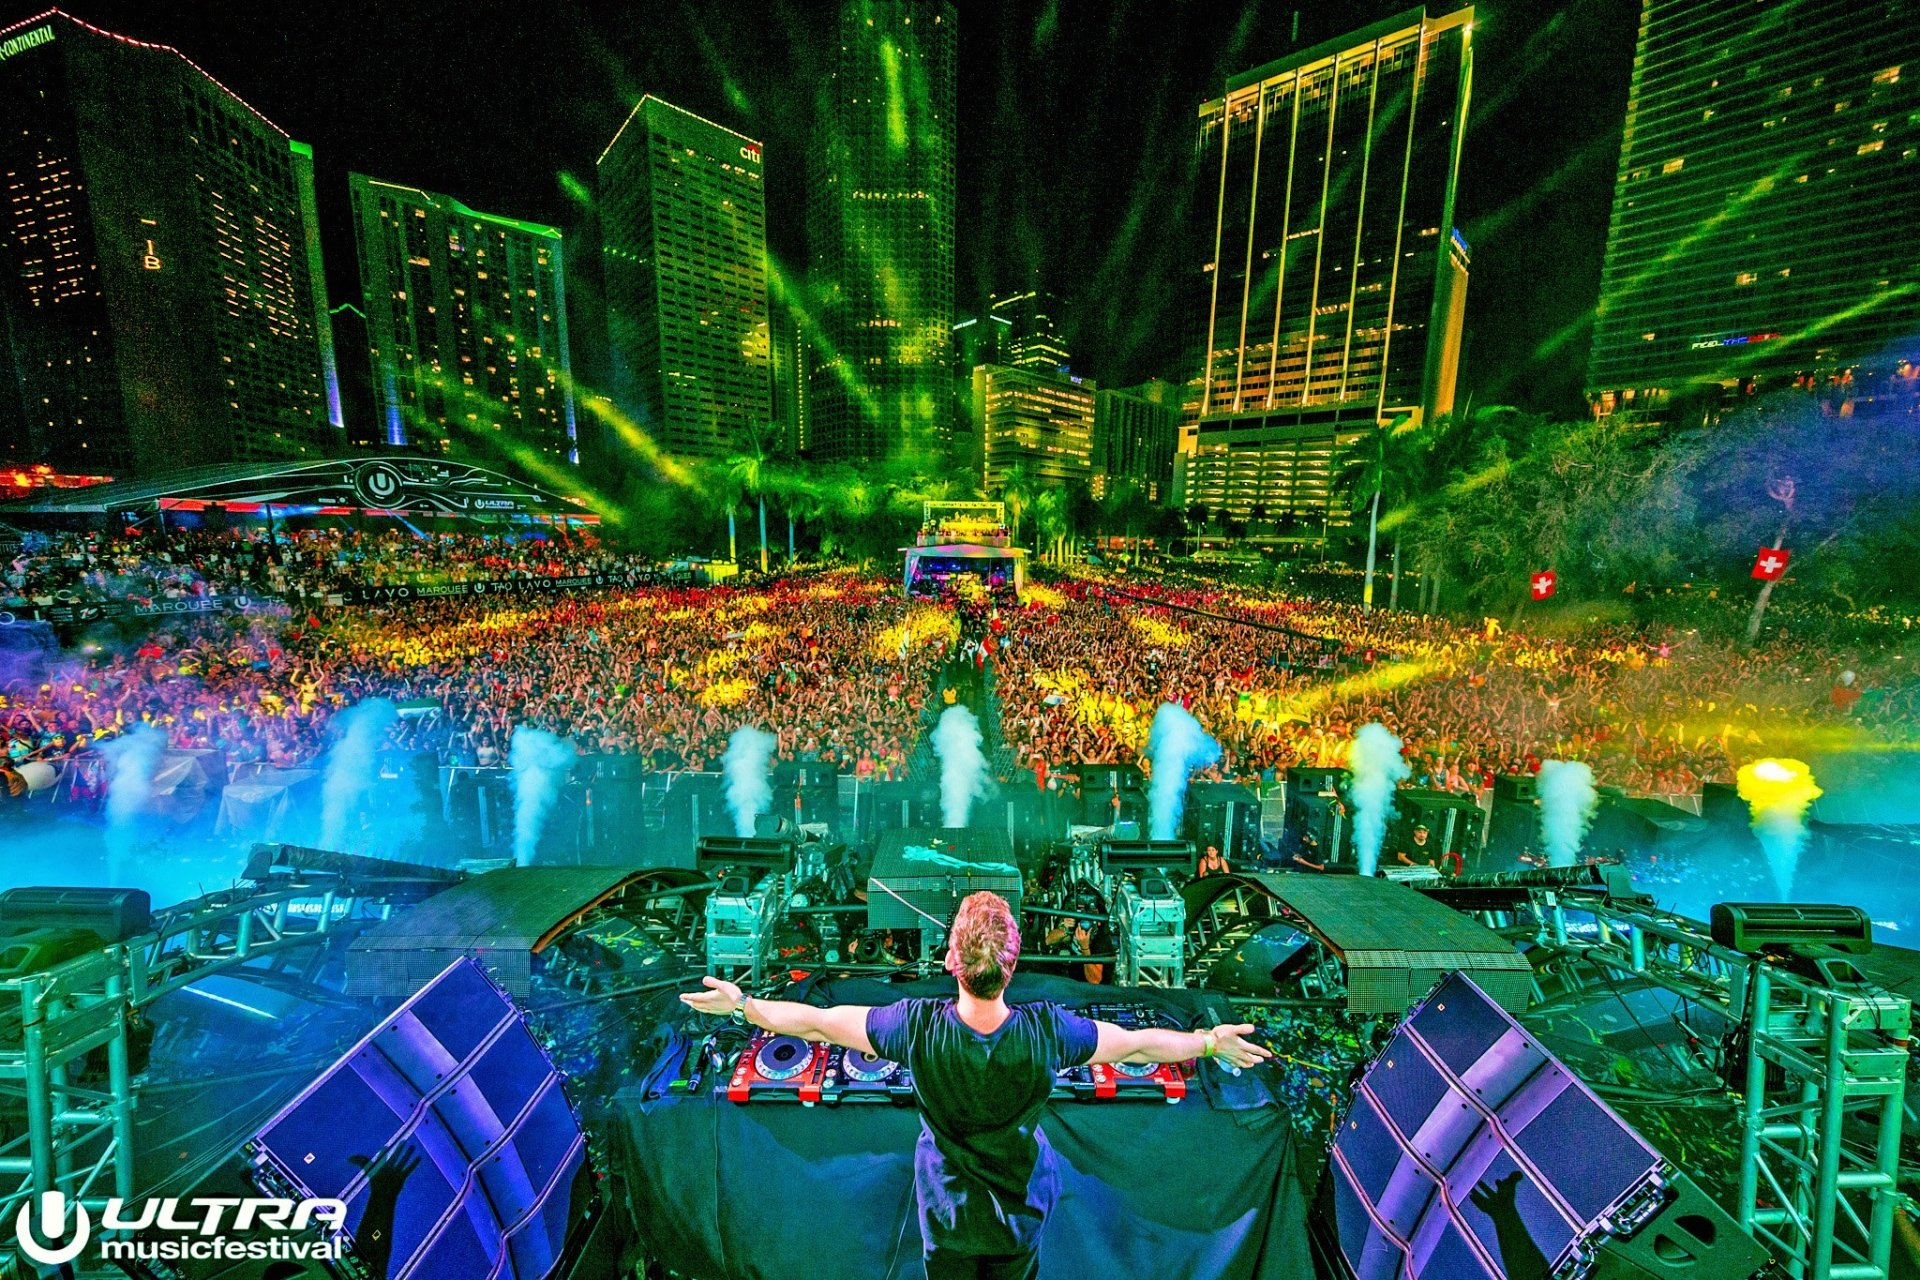 Download Ultra Music Festival Wallpaper Hd Gallery: Hardwell @ Ultra Music Festival 2016 Full HD Wallpaper And